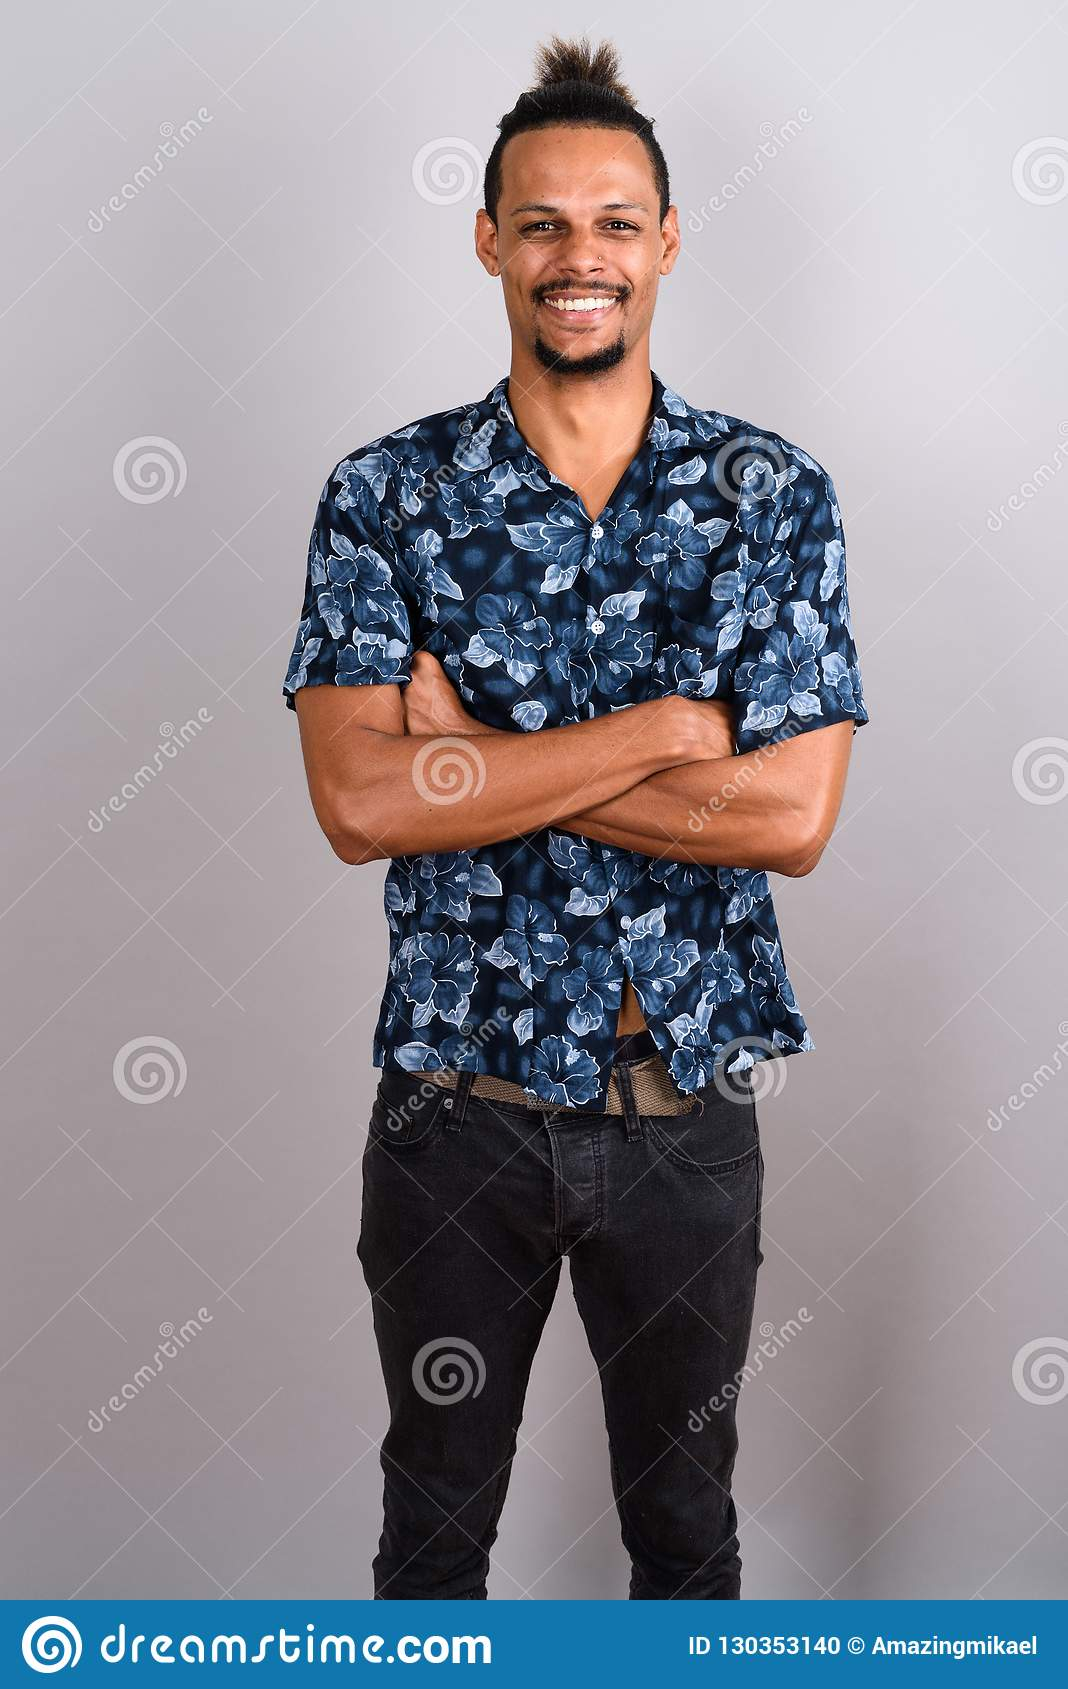 6f825110c Studio shot of young bearded handsome African man wearing Hawaiian shirt  with hair tied against gray background